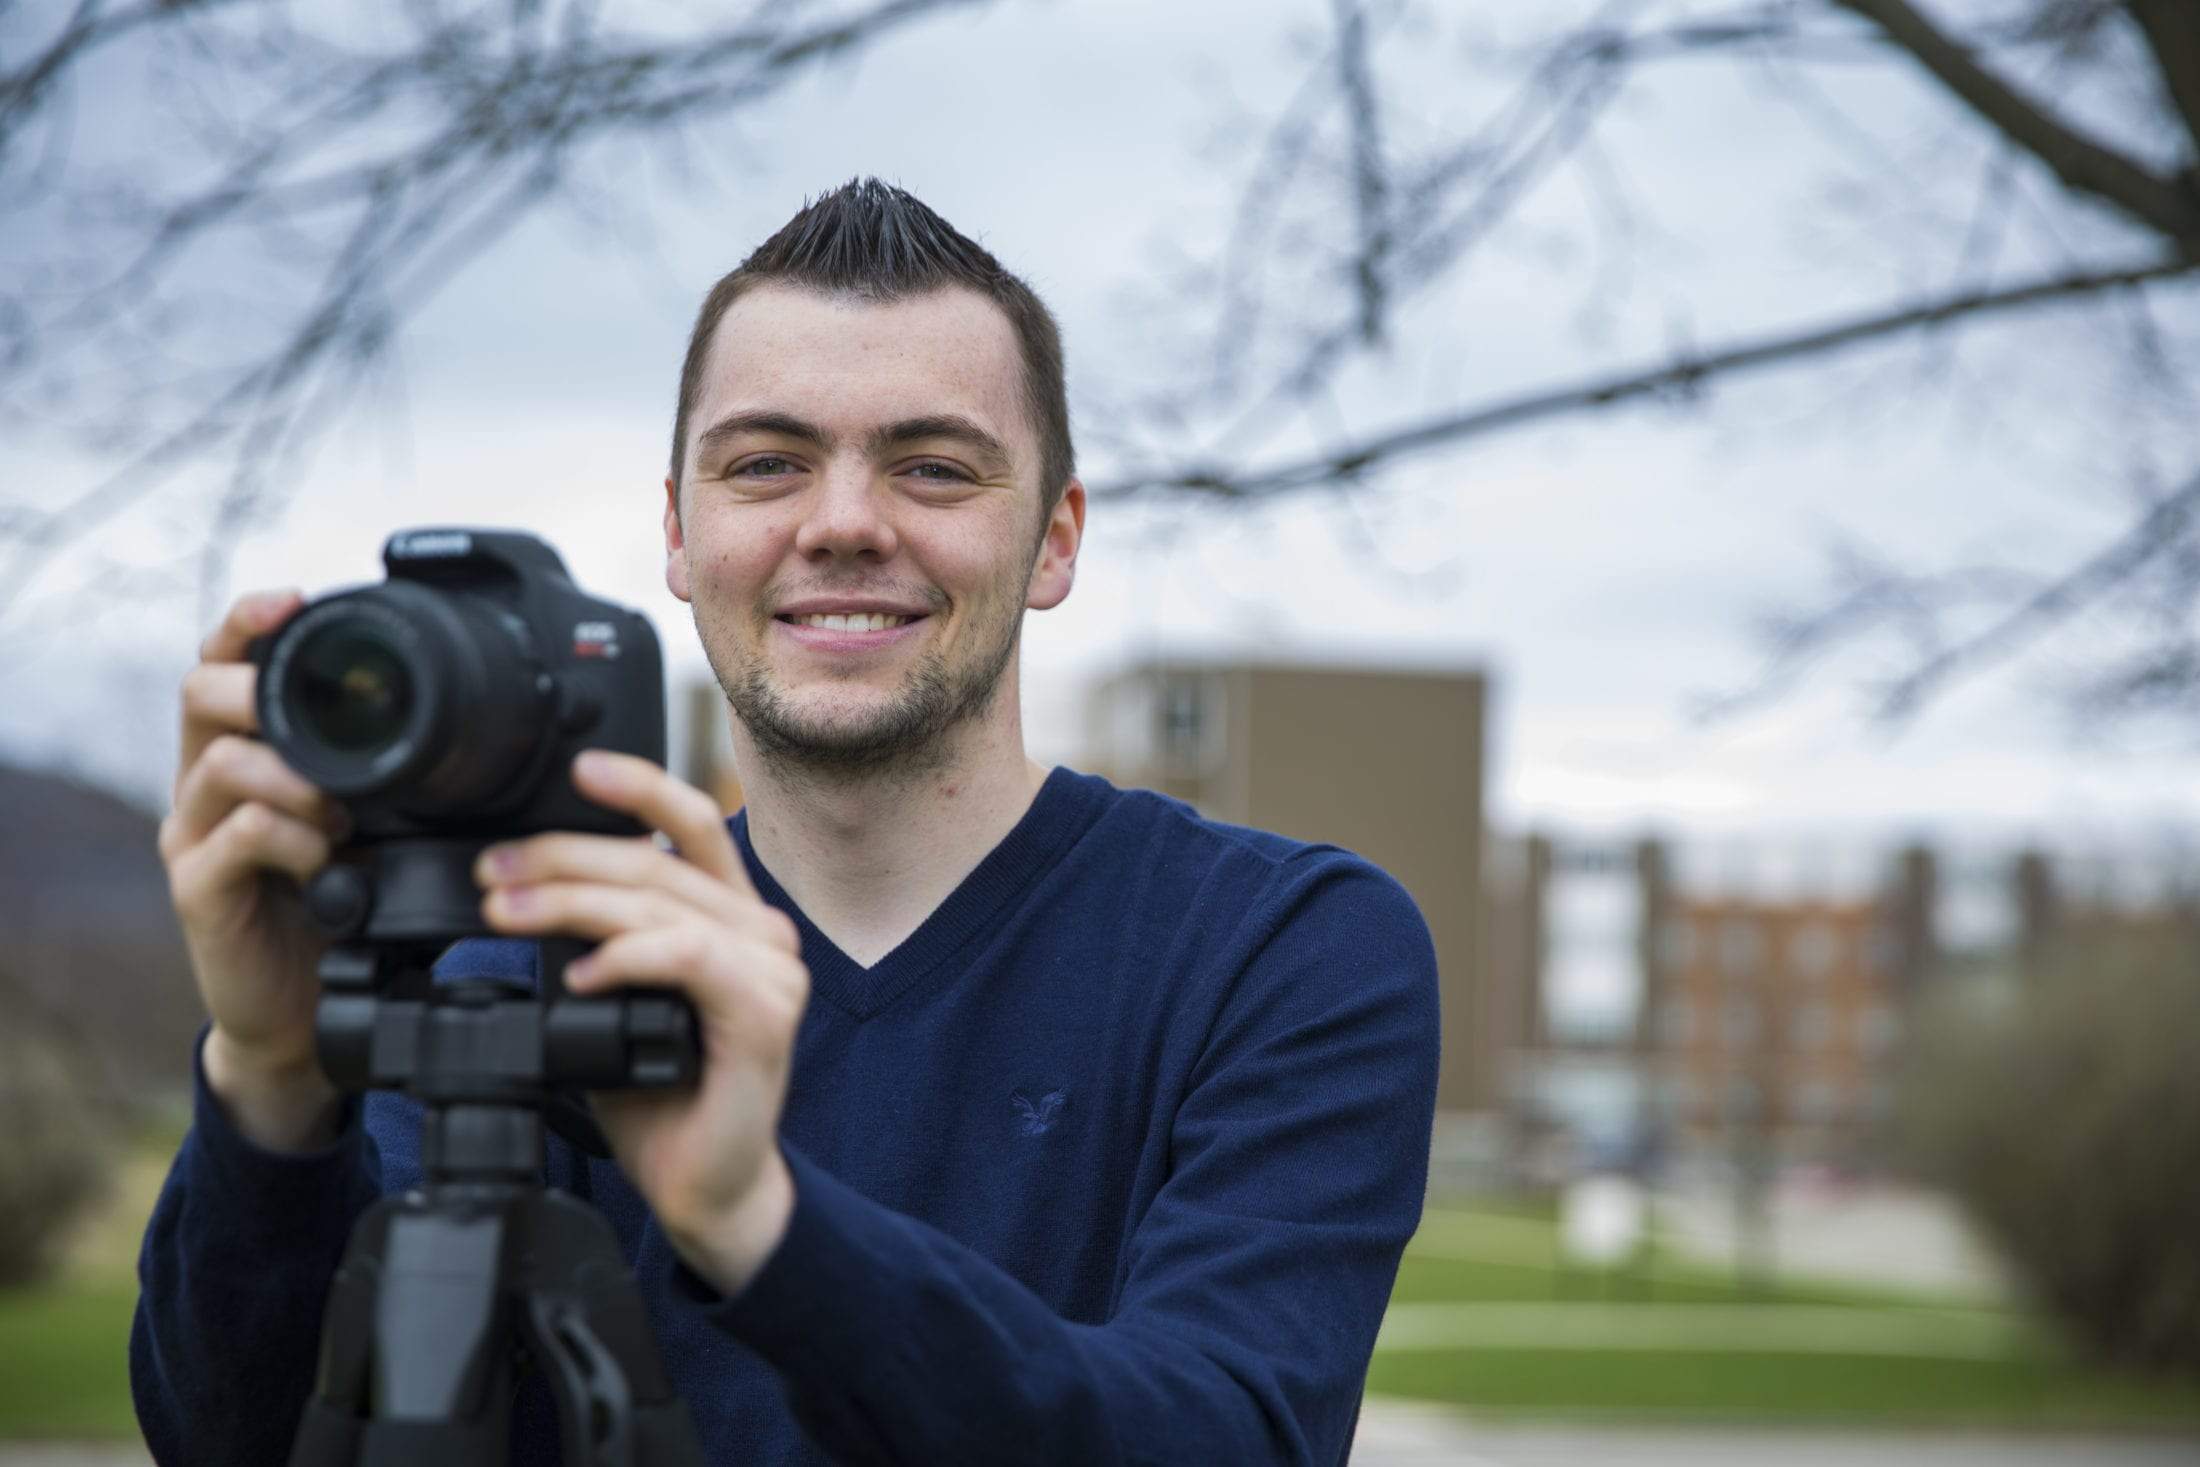 Learning to fail: Spurred by disappointment, Joshua improves as a filmmaker and an artist